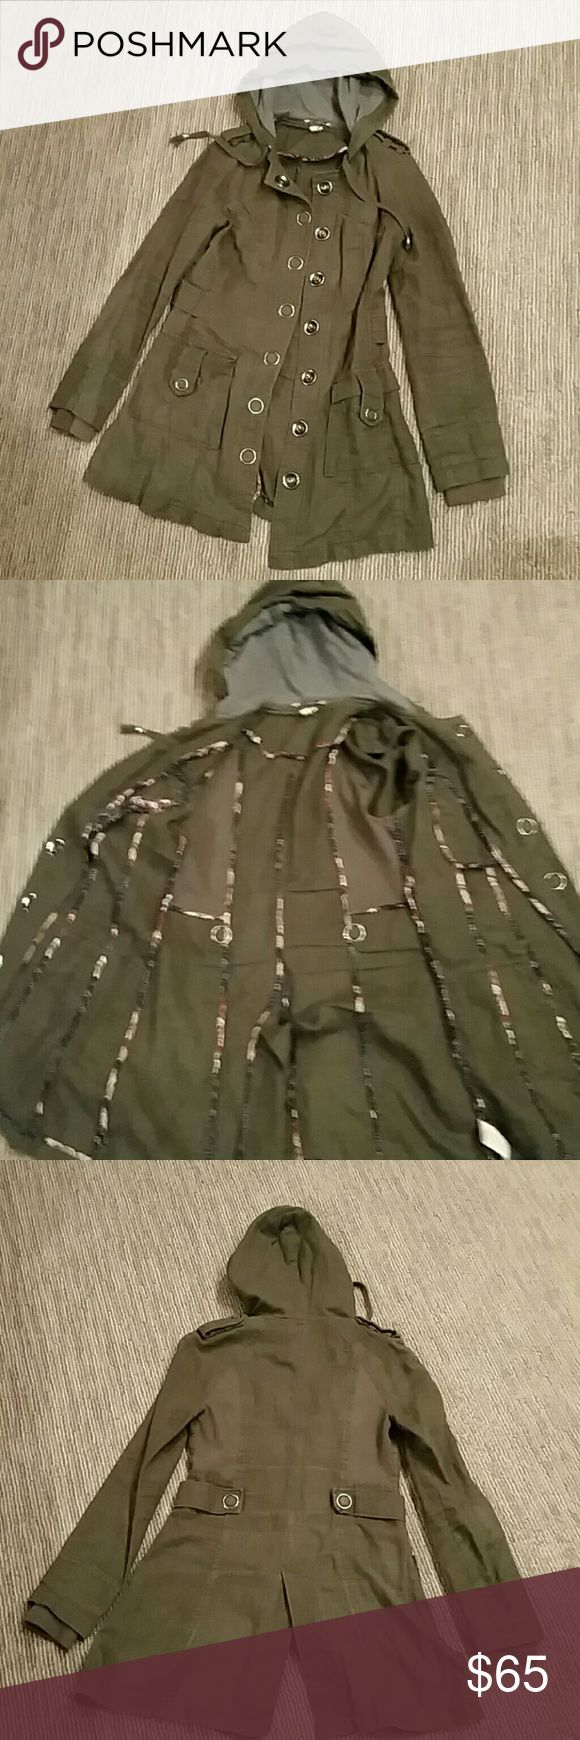 Free people utility jacket Women's Free People utility jacket | size 6 | moss green| excellent condition | see last photo for fabric content Free People Jackets & Coats